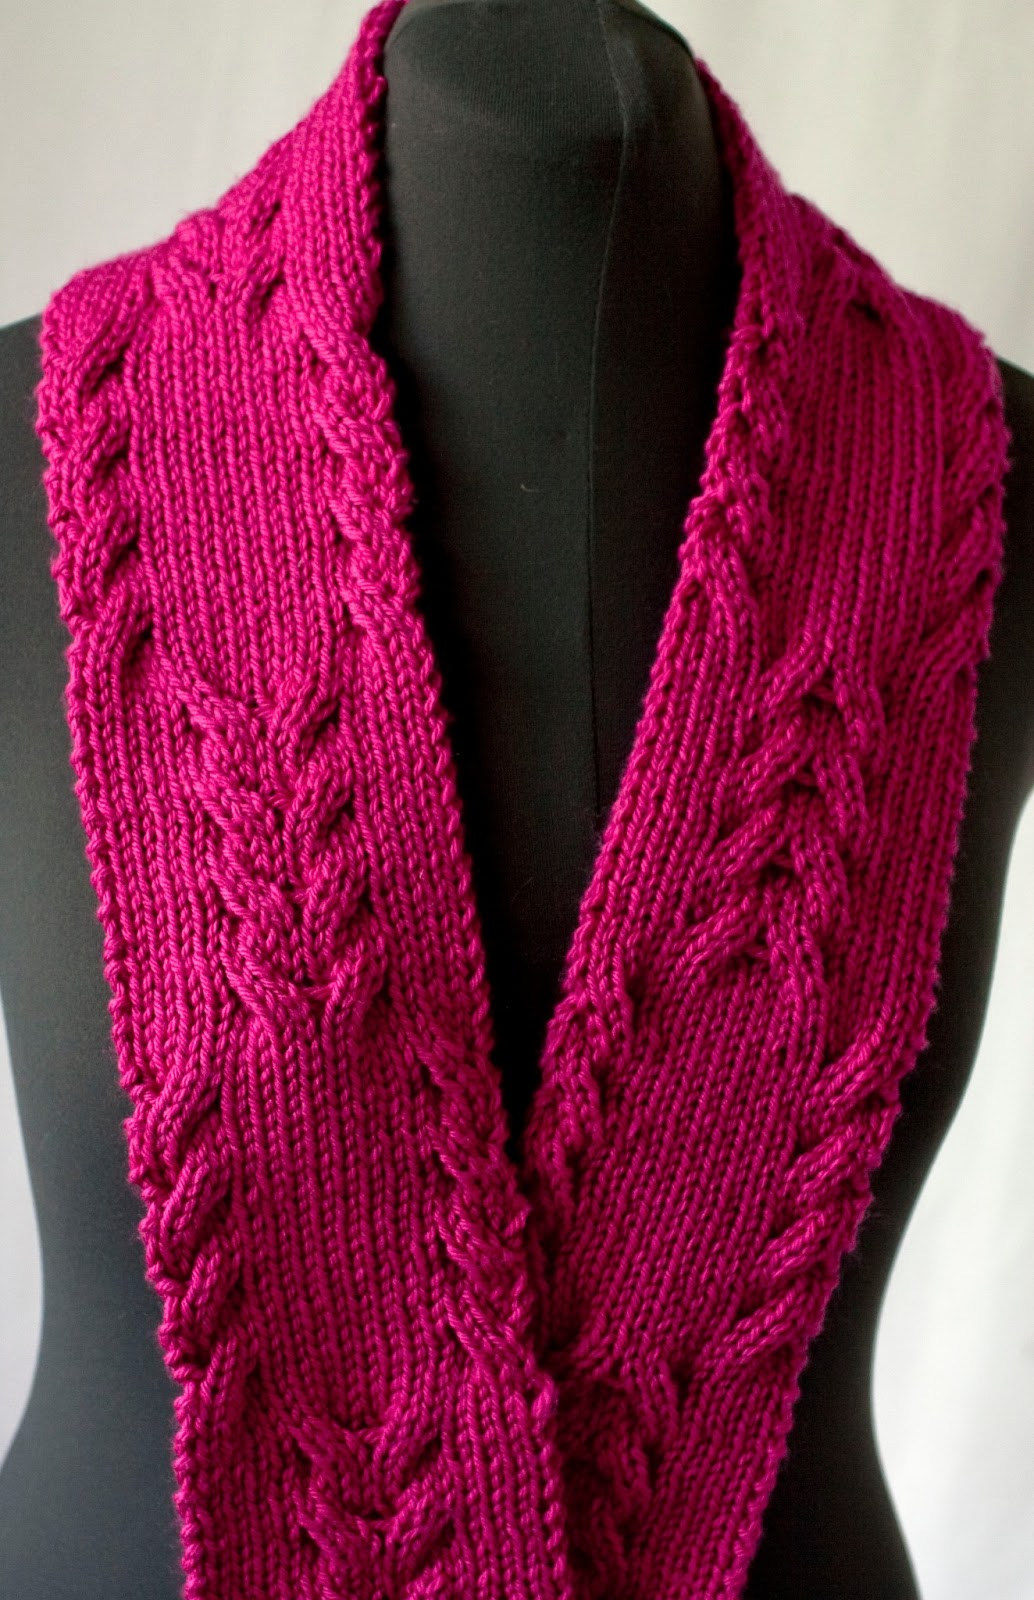 Knitting Pattern For Reversible Cable Scarf : Cascade Yarns Blog: Reversible Cabled Scarf - 220 Superwash Aran